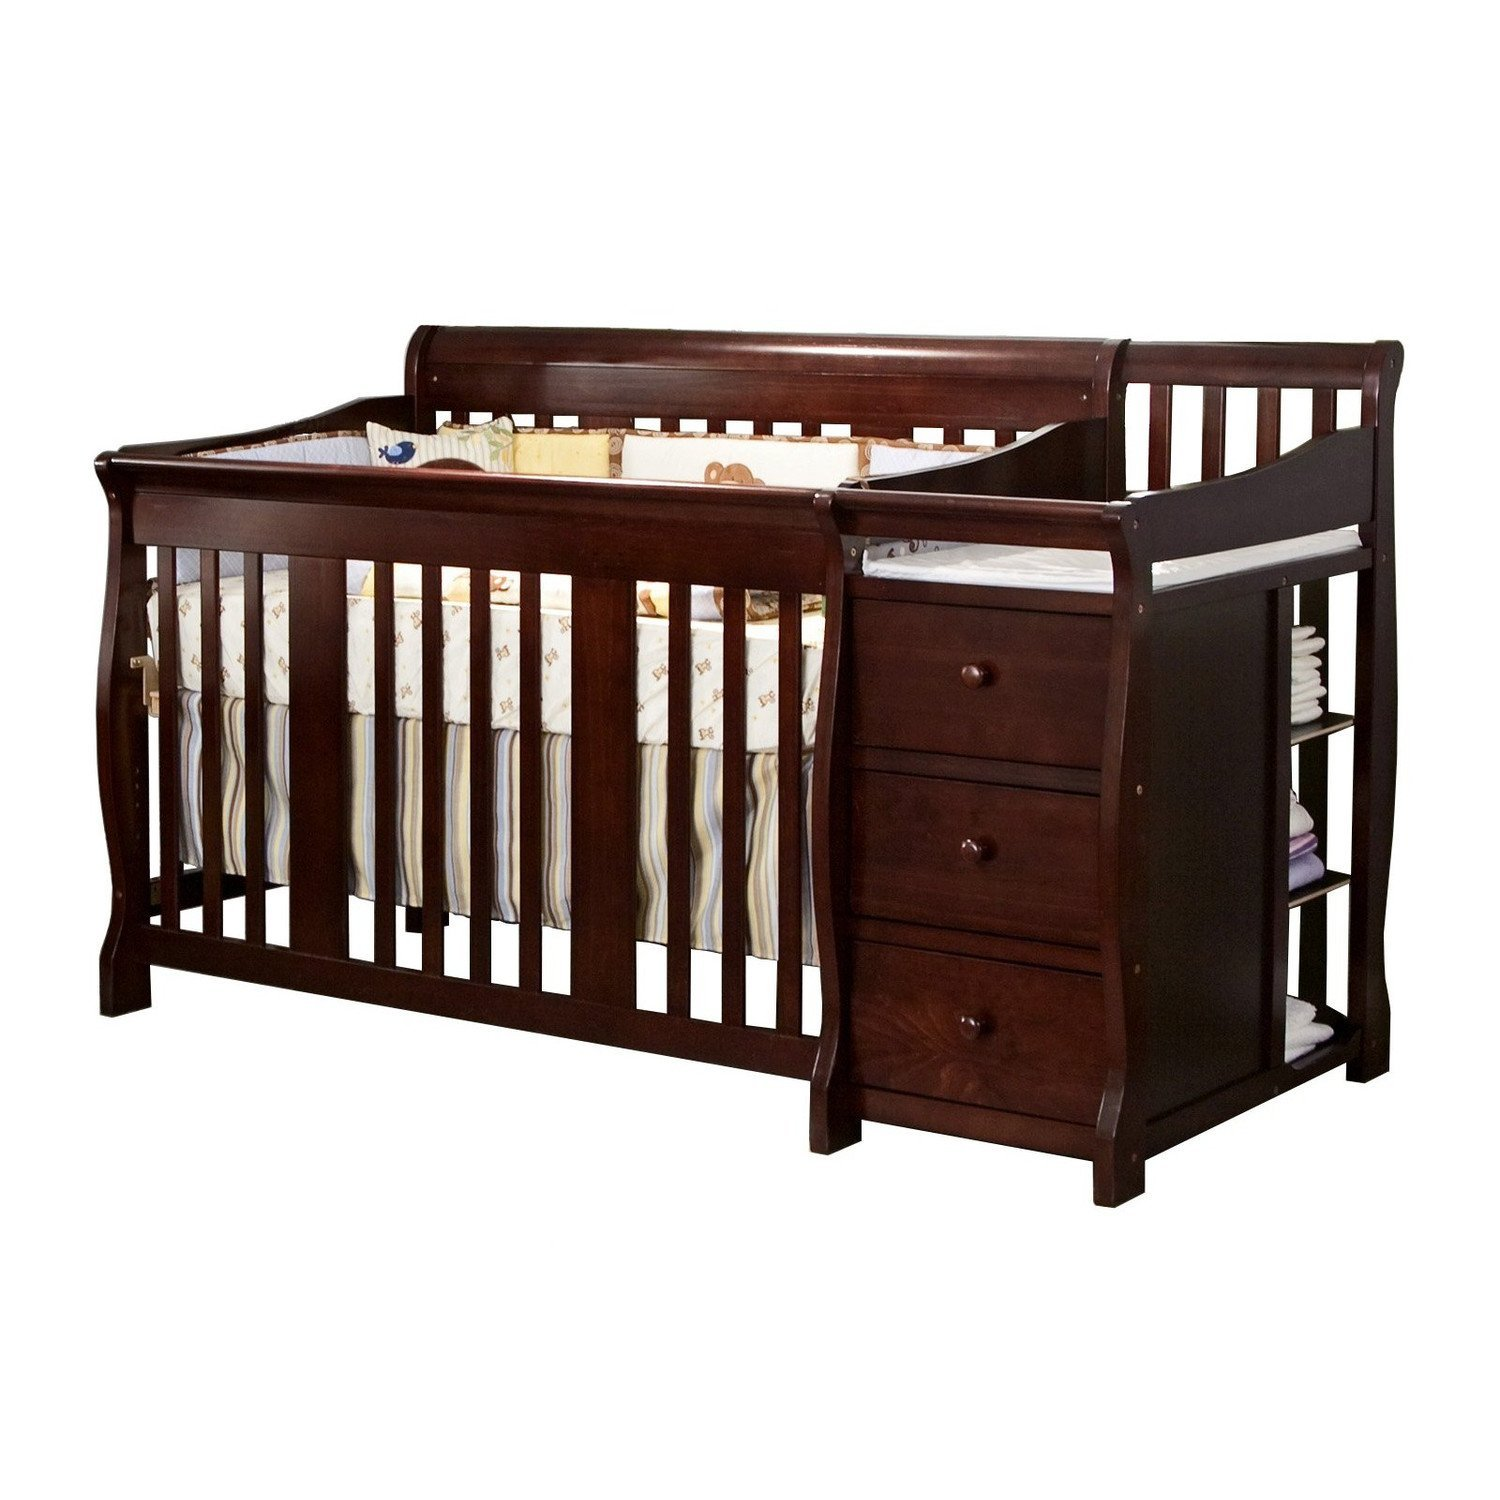 crib changing table dresser combo home furniture design Practical Interior Design Practical Magic House Layout